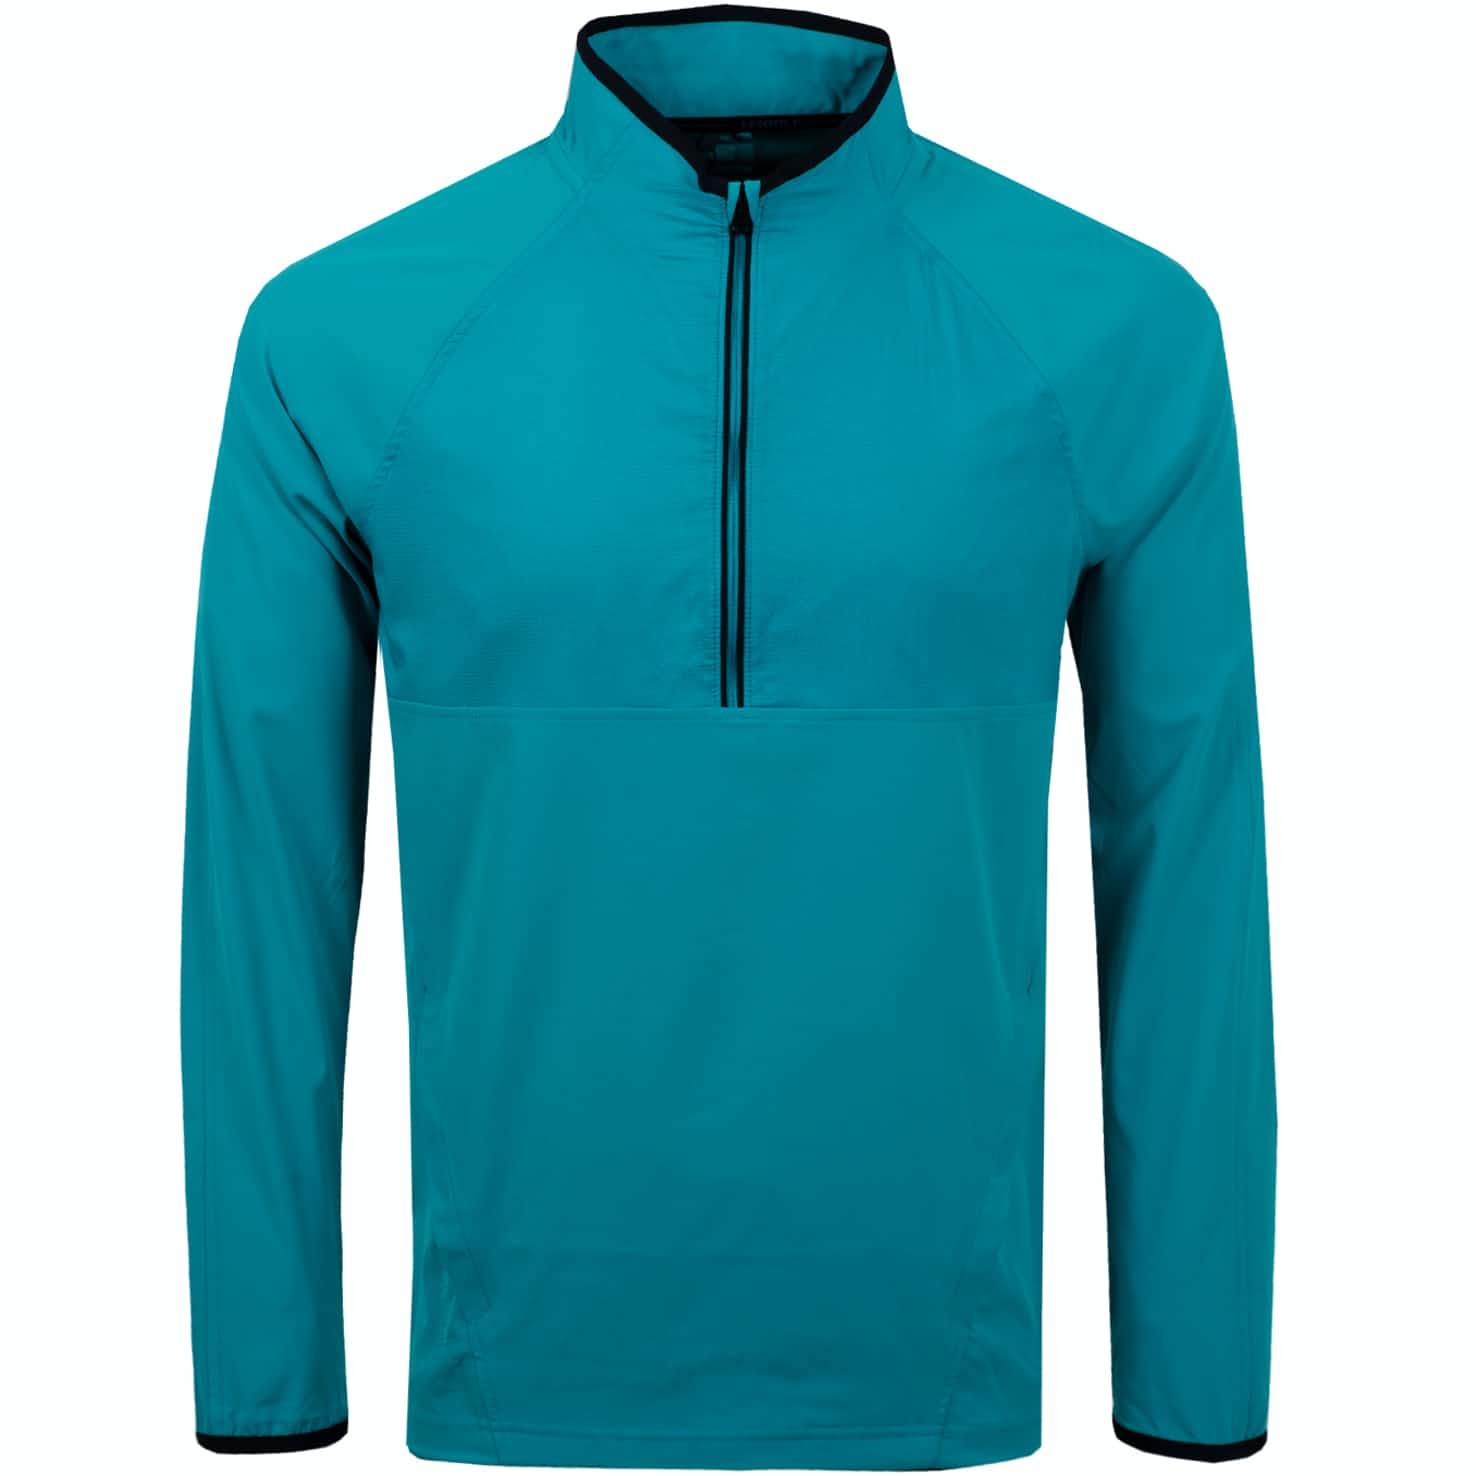 Storm Windstrike Half Zip Teal Rush/Pitch Grey  - AW19